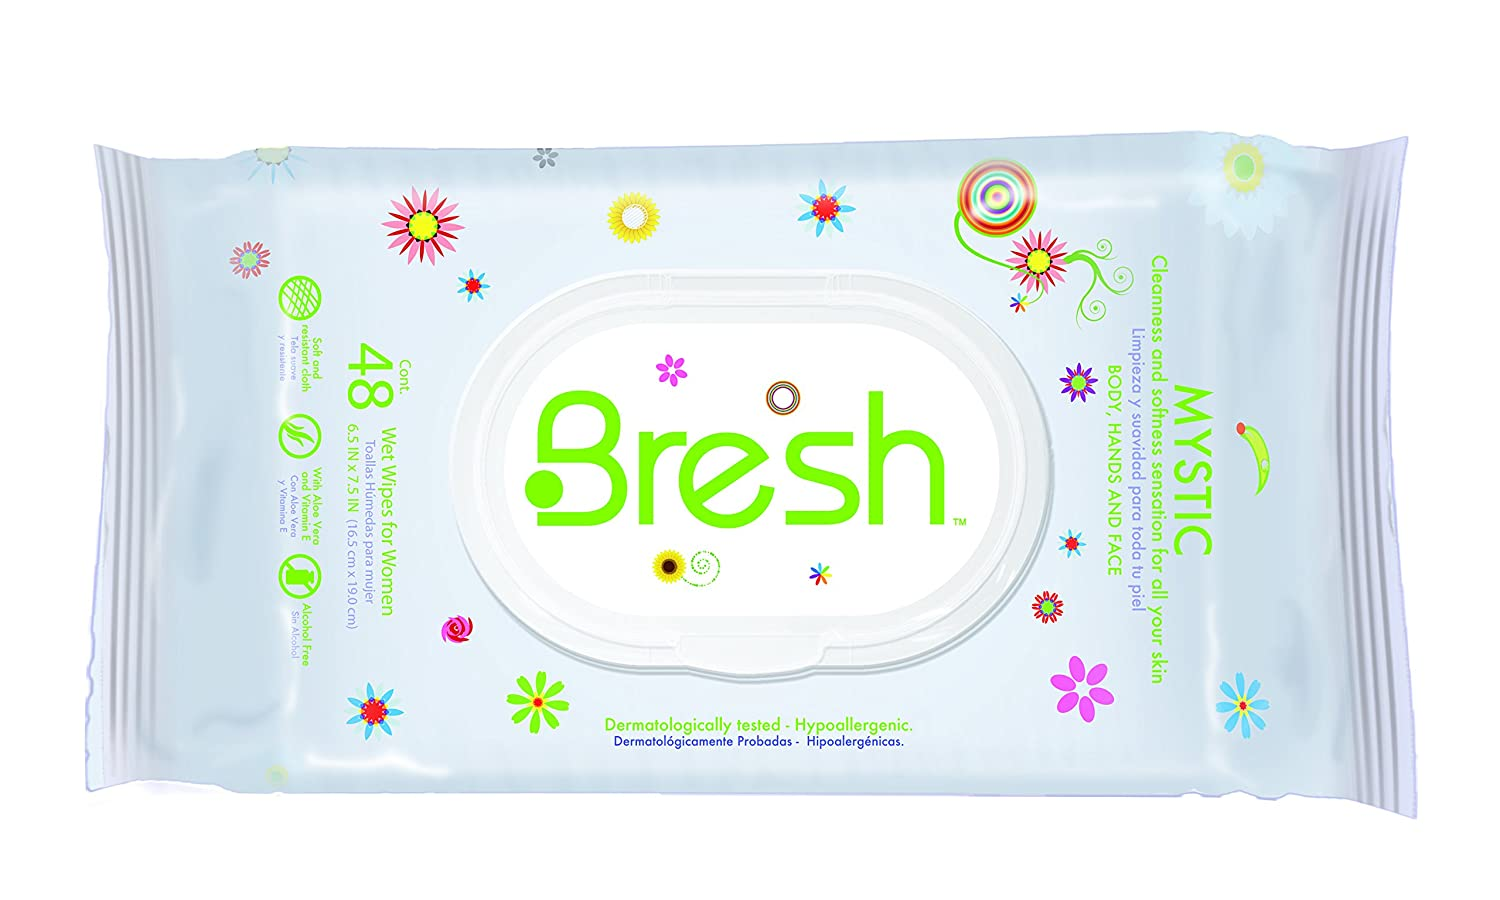 Amazon.com: Body Wipes for Women BRESH -Feminine Wipes- Hypoallergenic and pH Balanced Wet Wipes - Ideal after Sports, Traveling, Car, Purse, ...